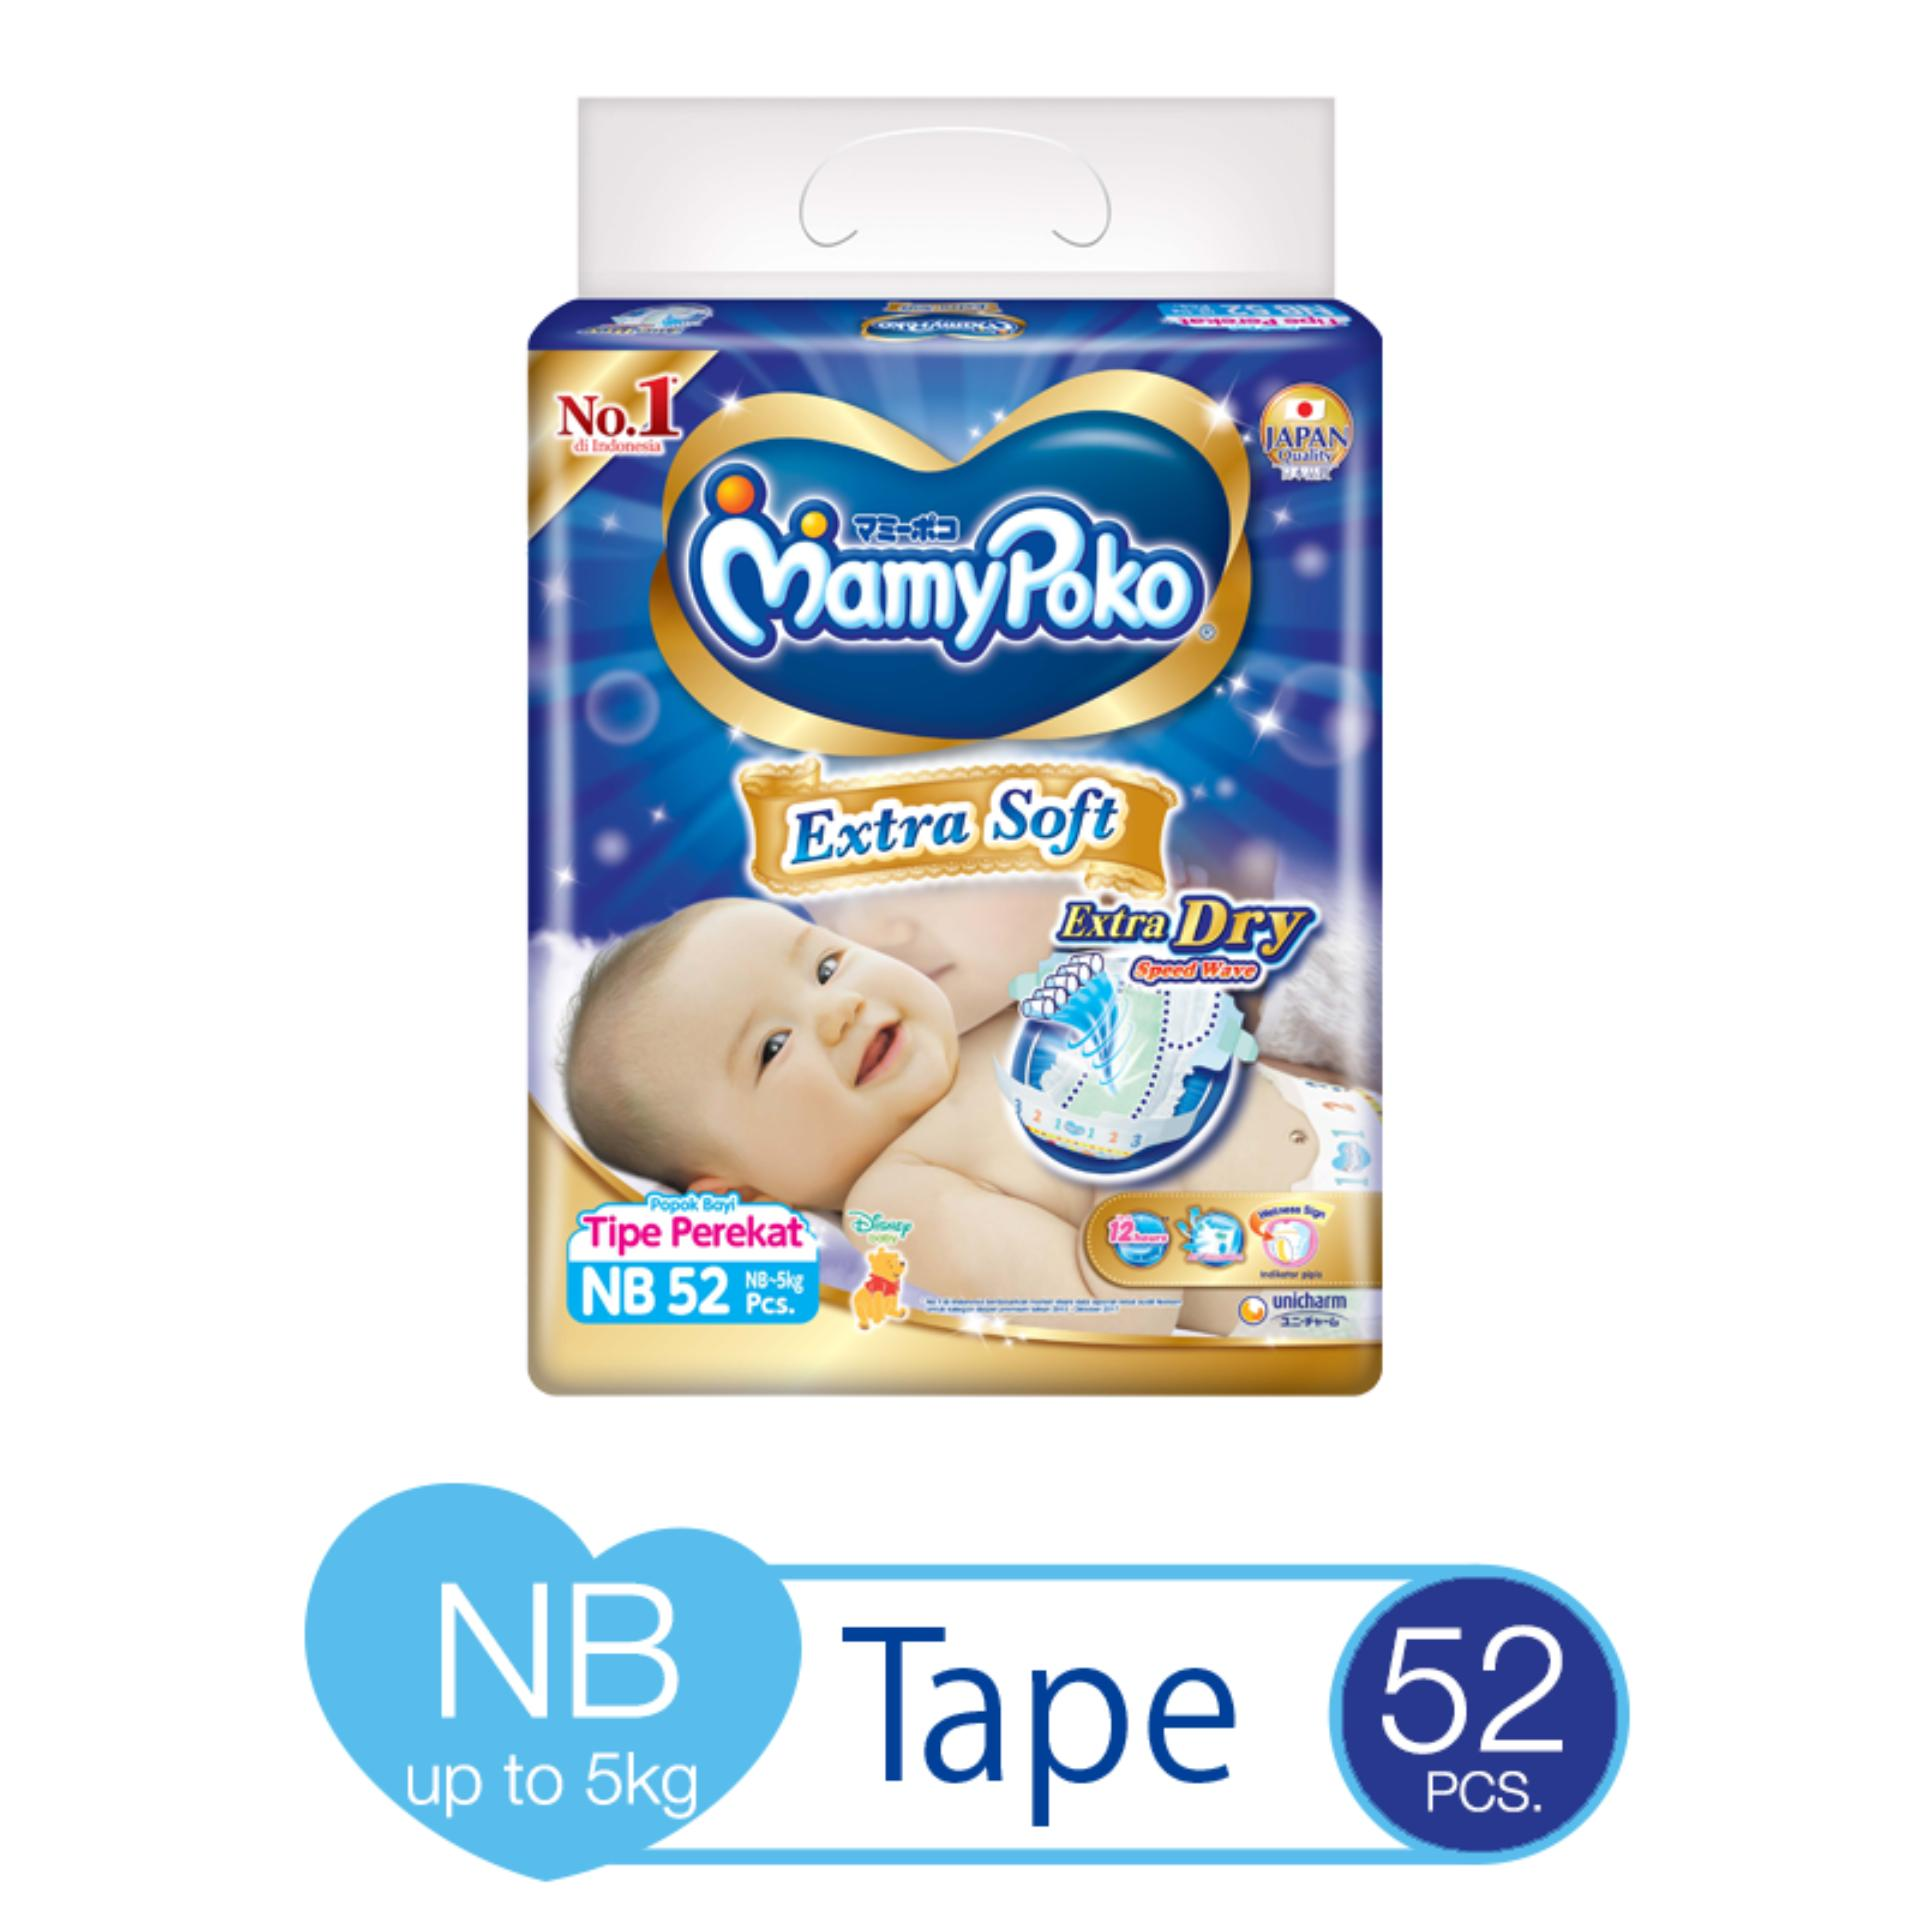 Mamypoko Extra Soft NB - 52 pcs x 1 pack (52 pcs) - Tape